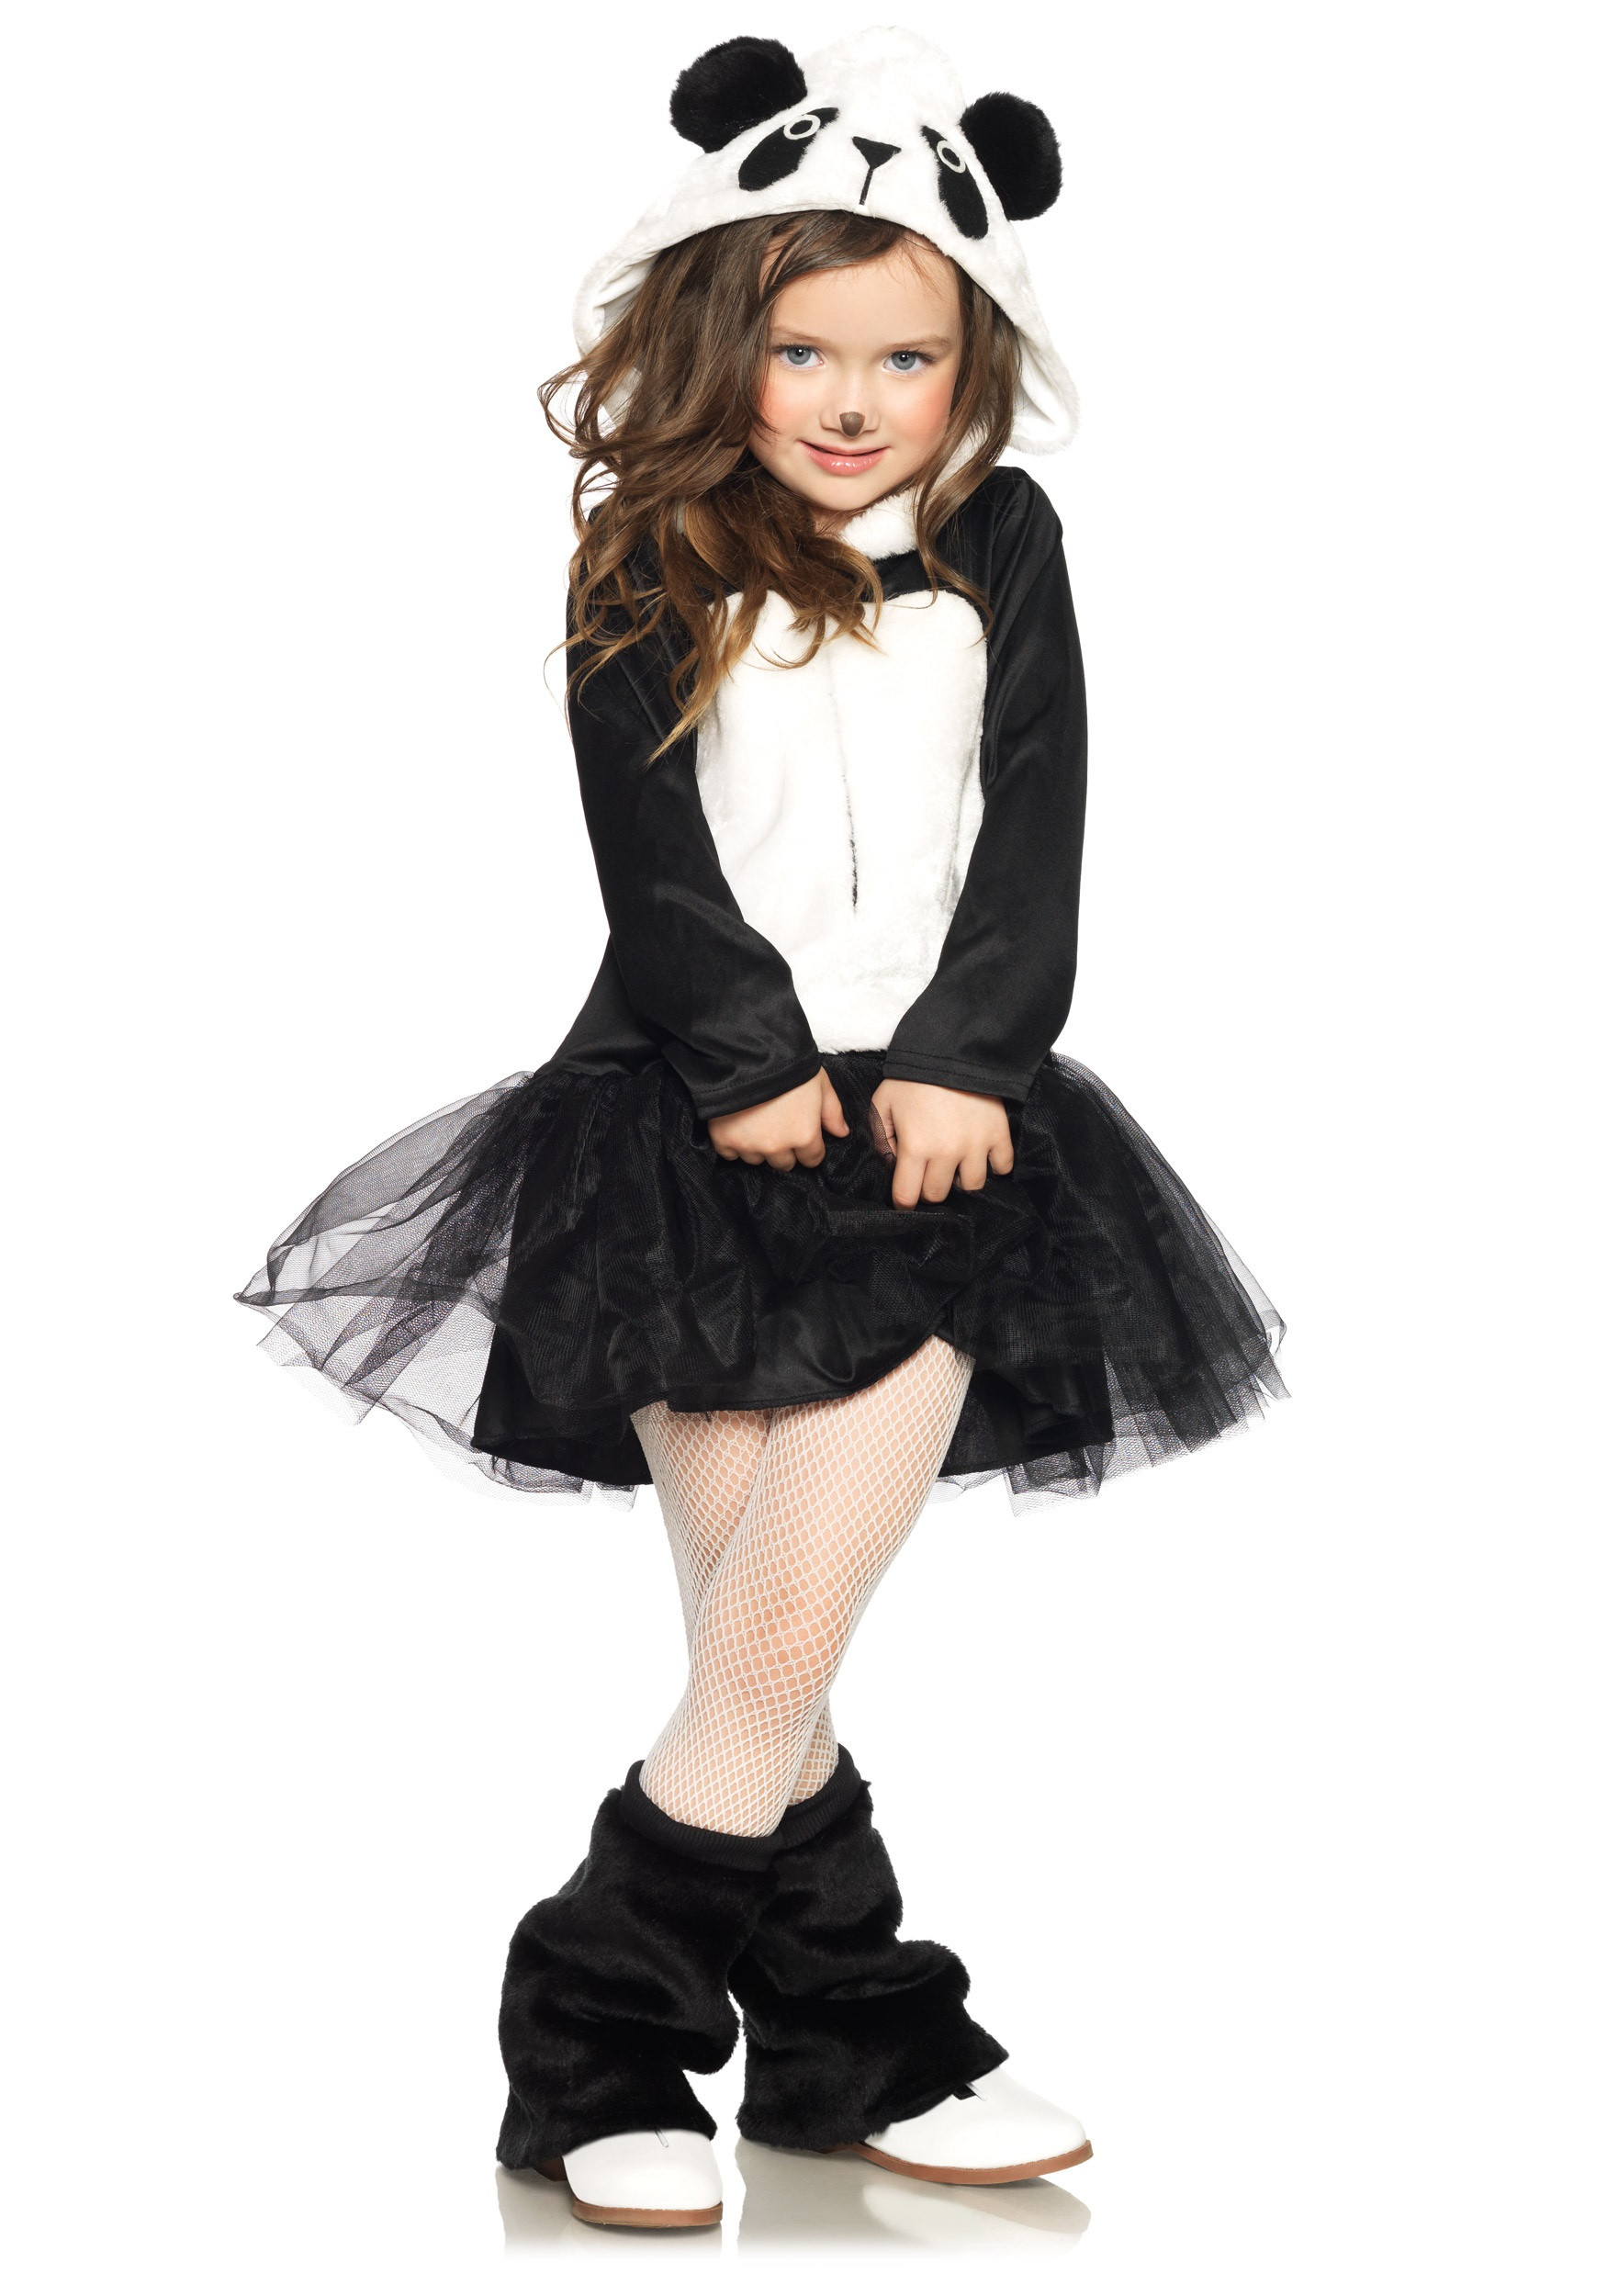 Best ideas about DIY Costumes For Girls . Save or Pin Girls Pretty Panda Bear Costume Now.